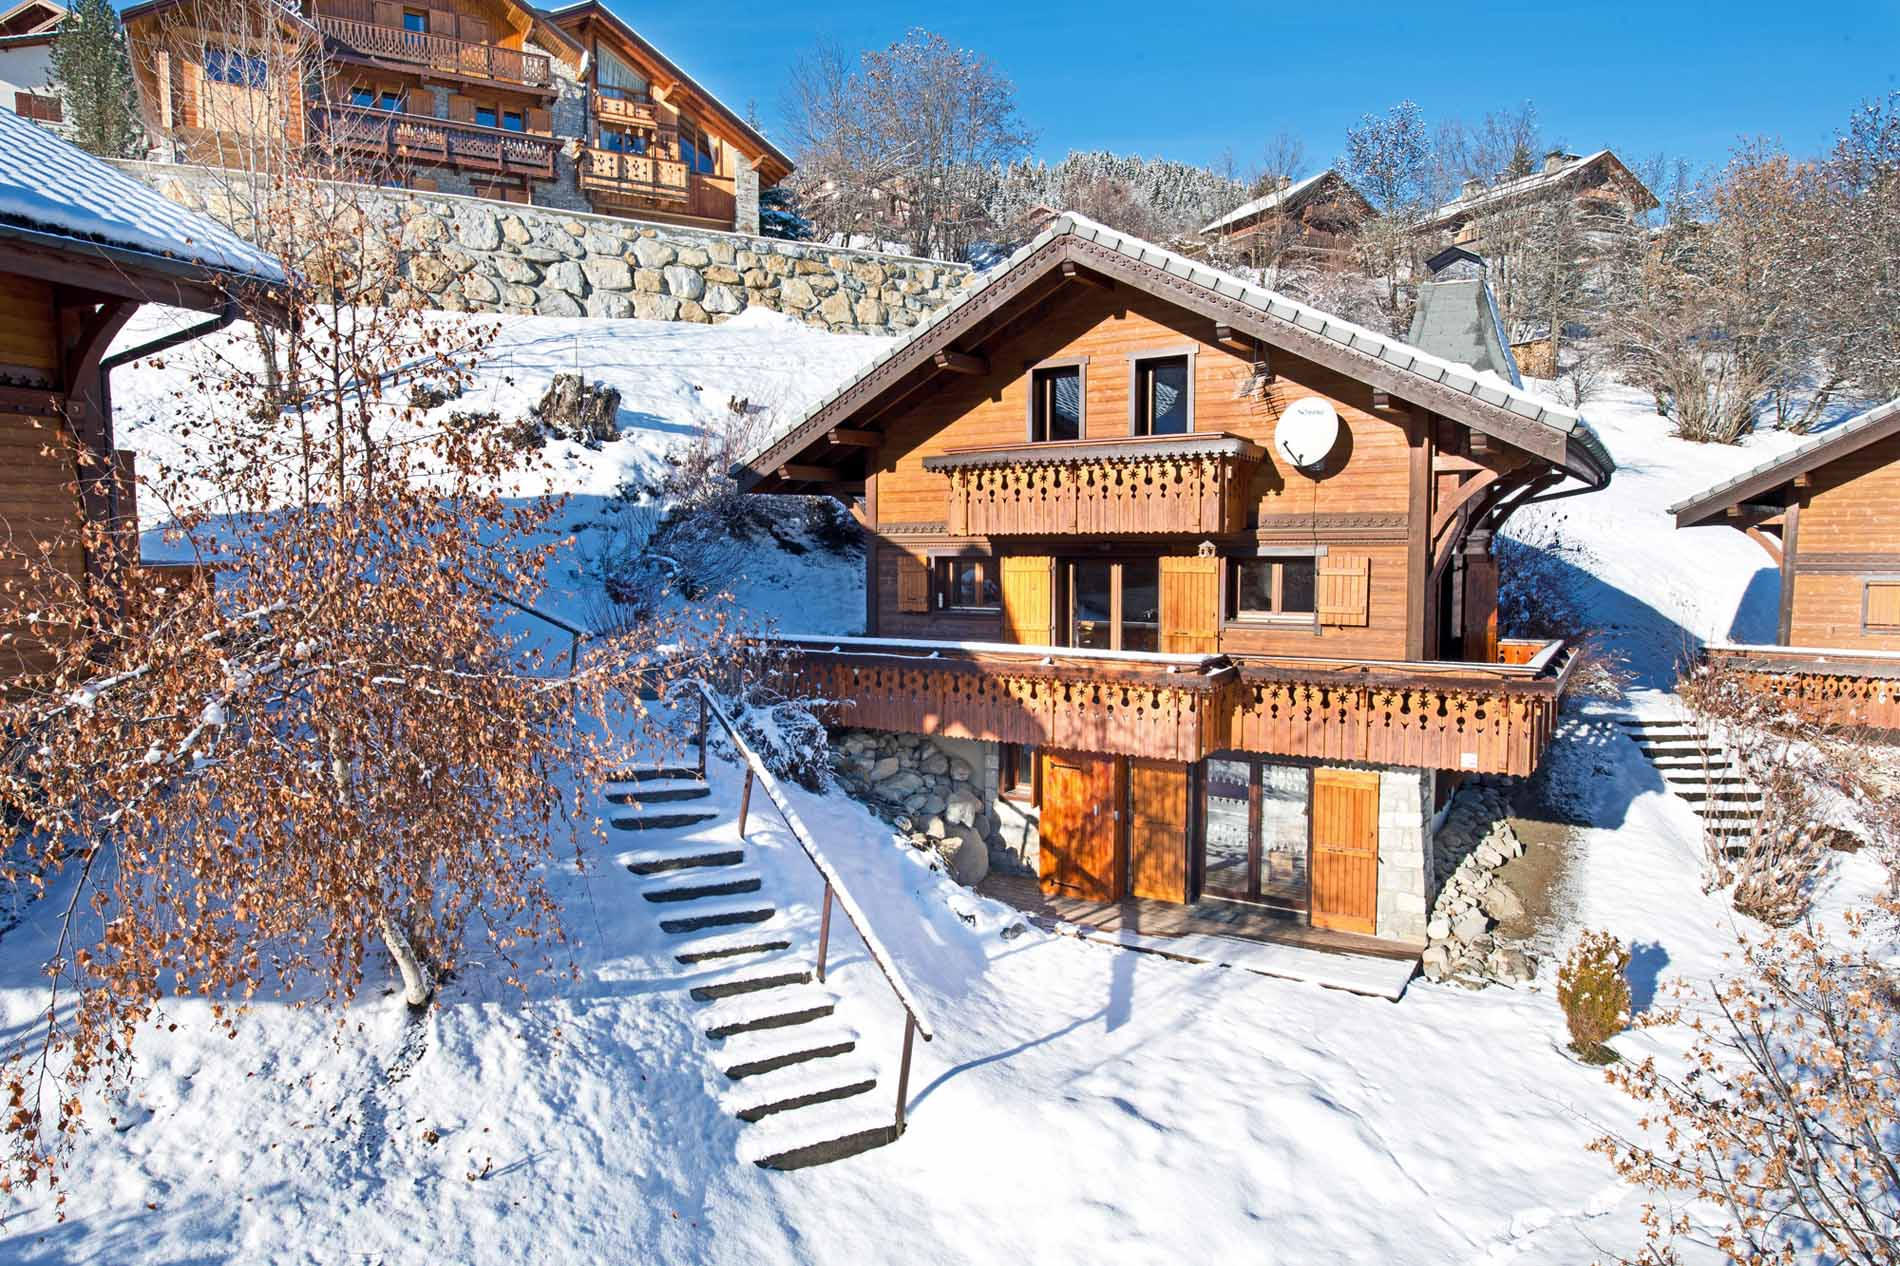 Chalet jardin sauvage ii self catered chalet for Chalet jardin